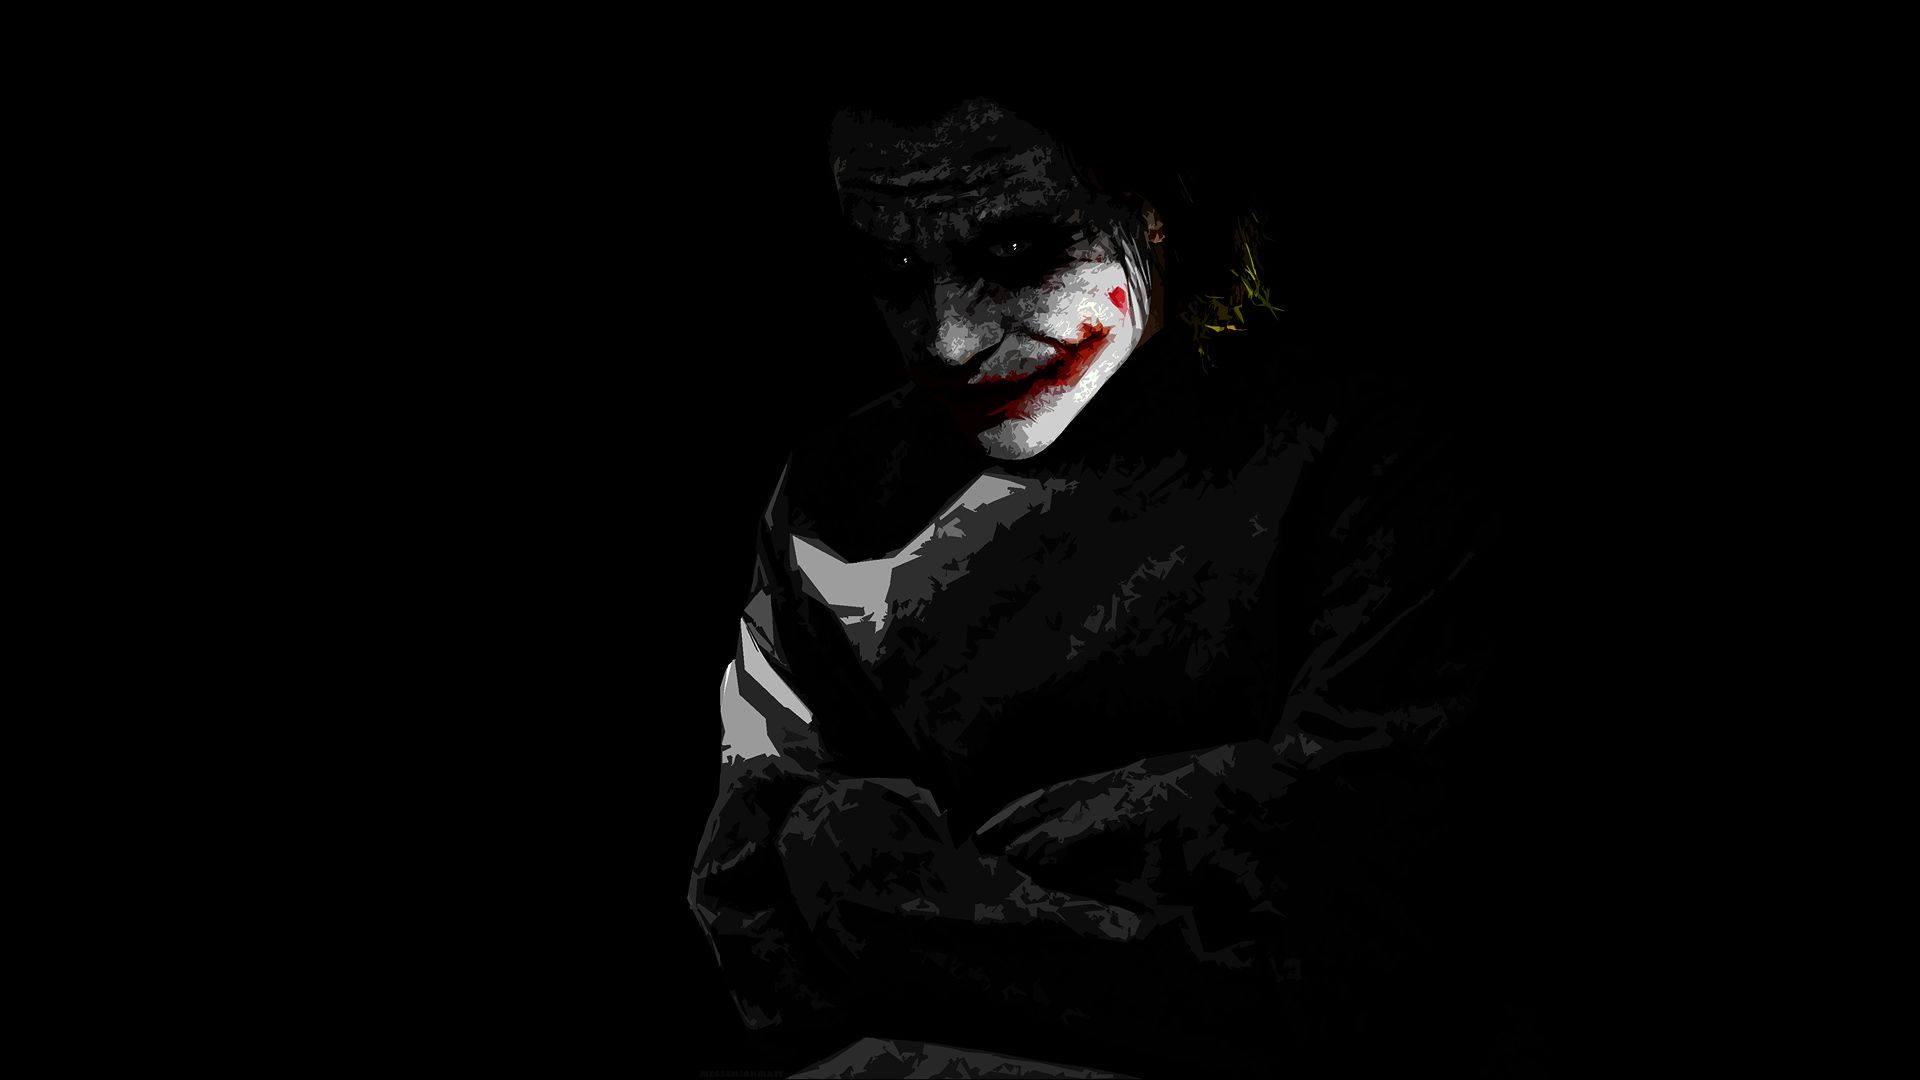 Cool Joker Wallpapers | HD Wallpapers | Pinterest | Joker, Wallpaper and Desktop backgrounds